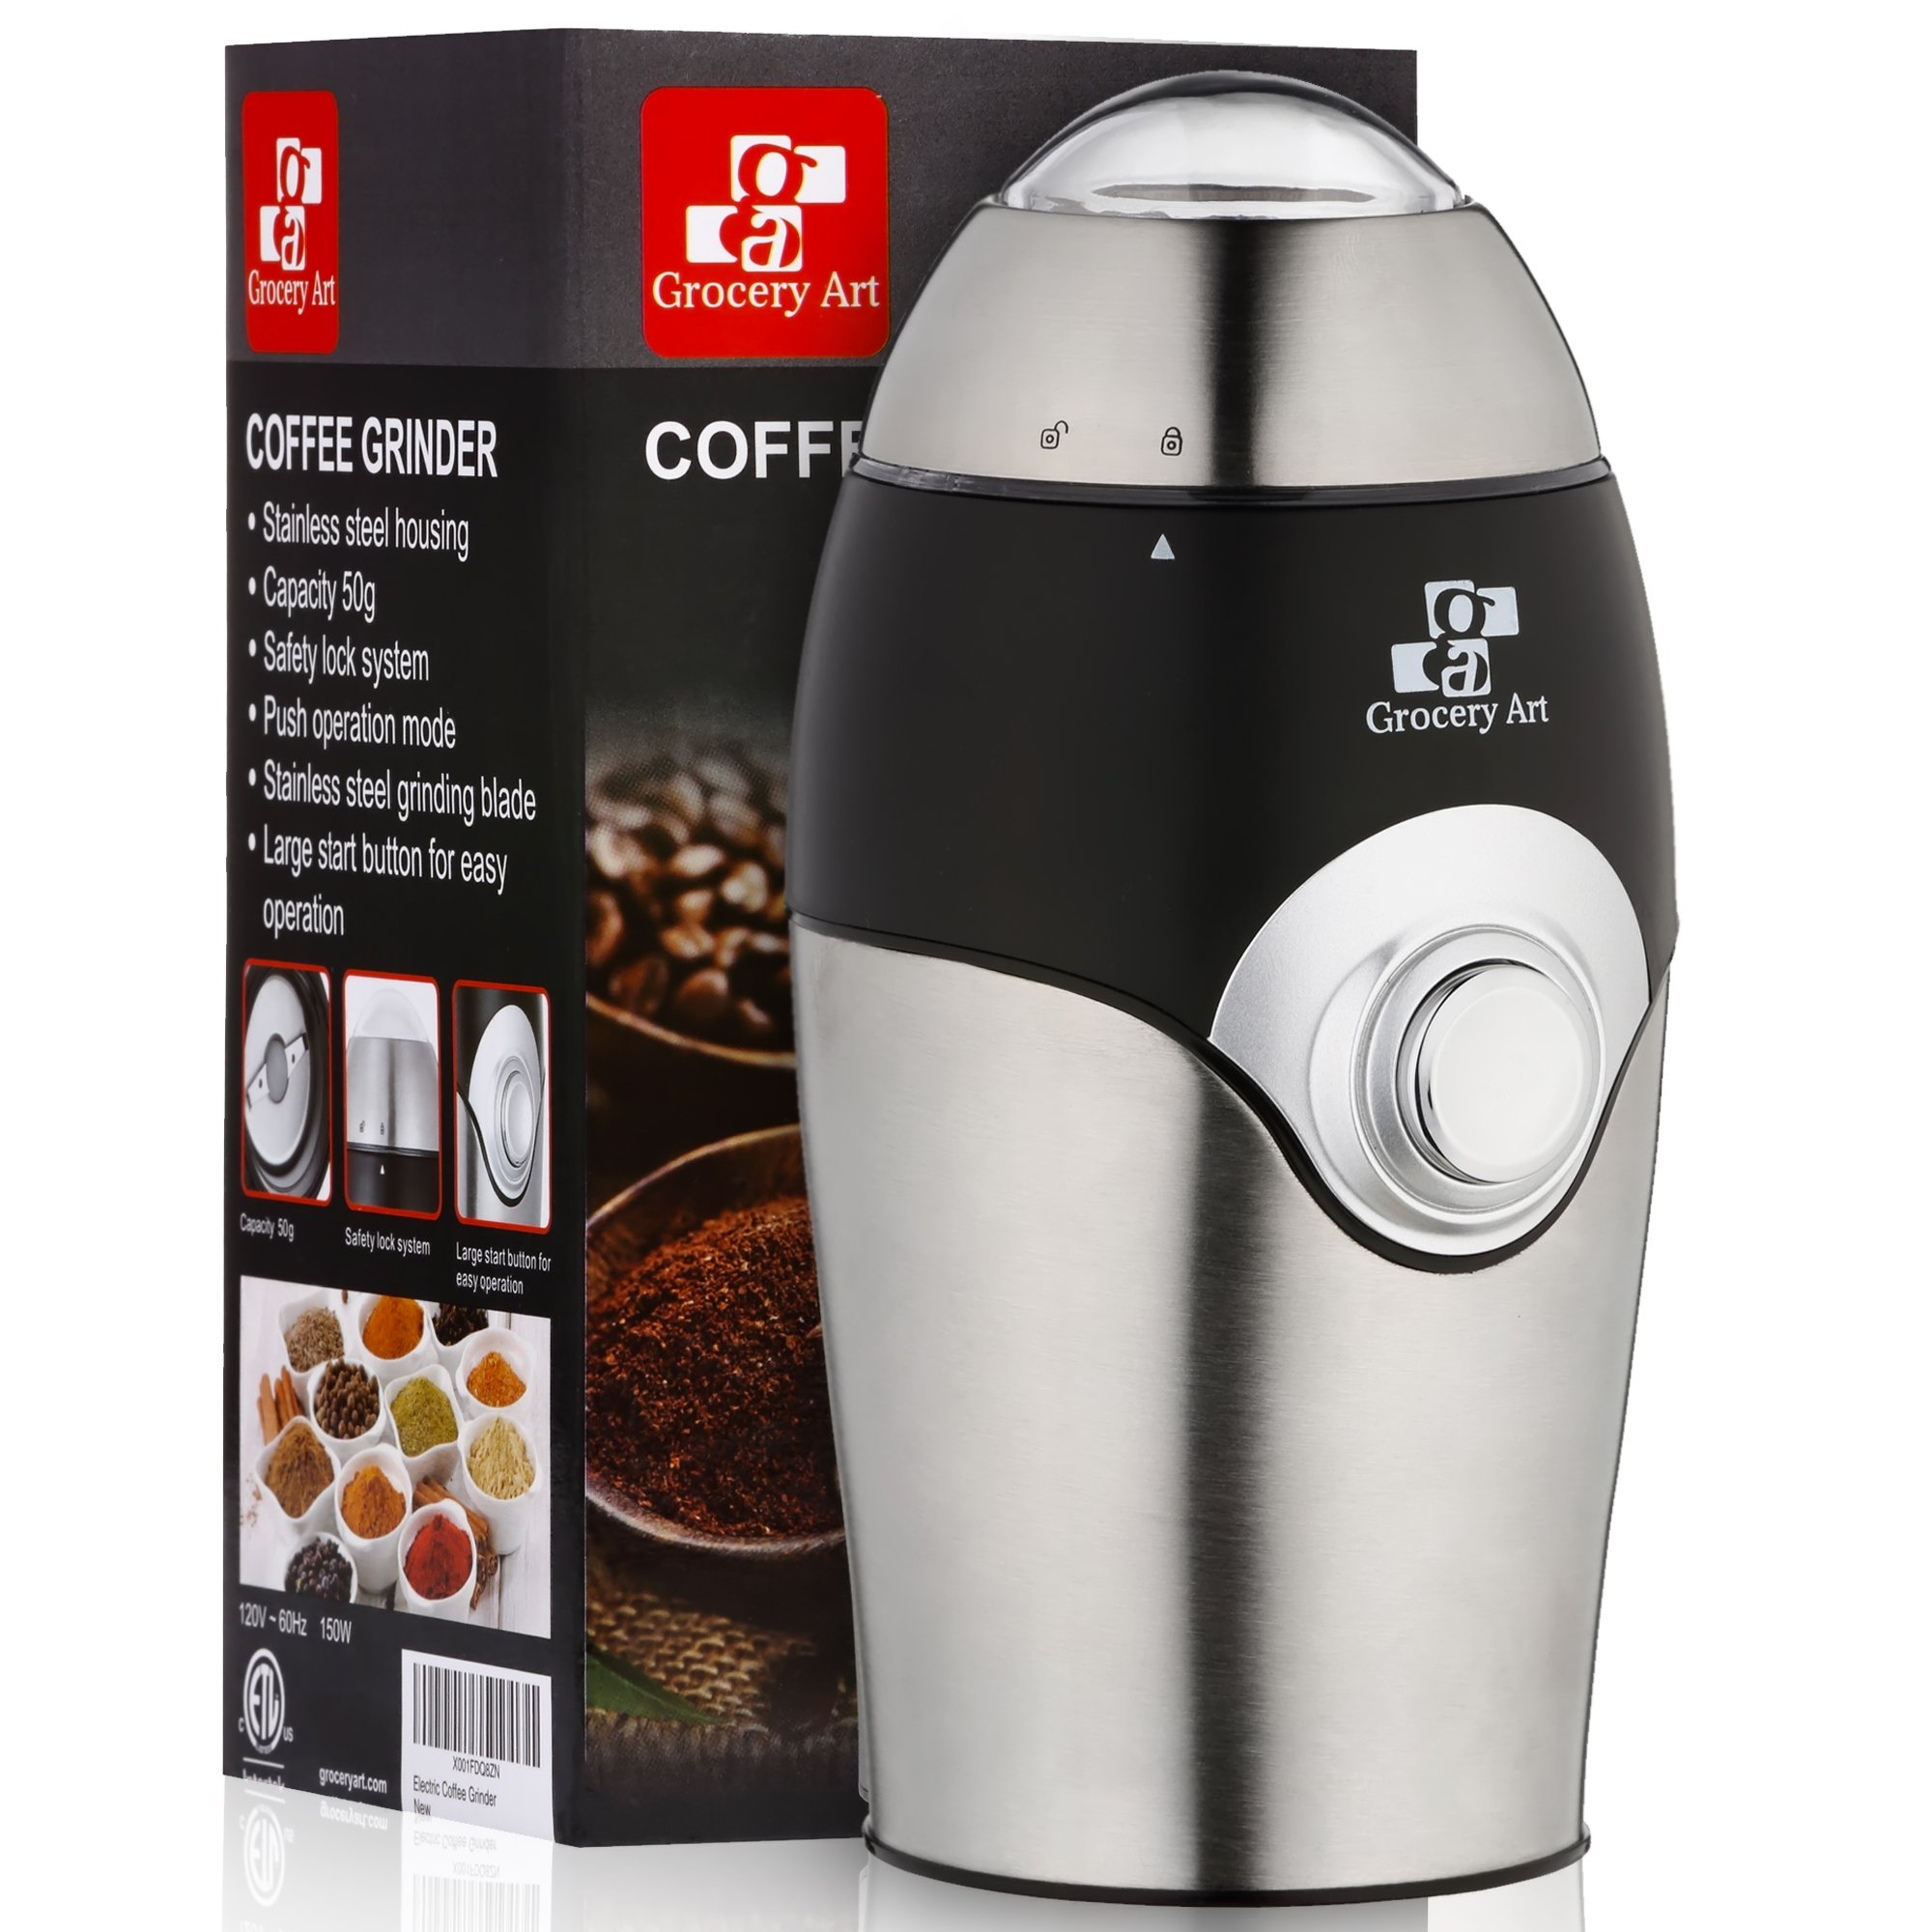 Electric Coffee Grinder Blade Mill - Small & Compact Simple Touch Automatic Grinding Tool Appliance for Whole Coffee Beans, Spices, Herbs, Pepper, Salt & Nuts - Great Coffee Gift Idea!